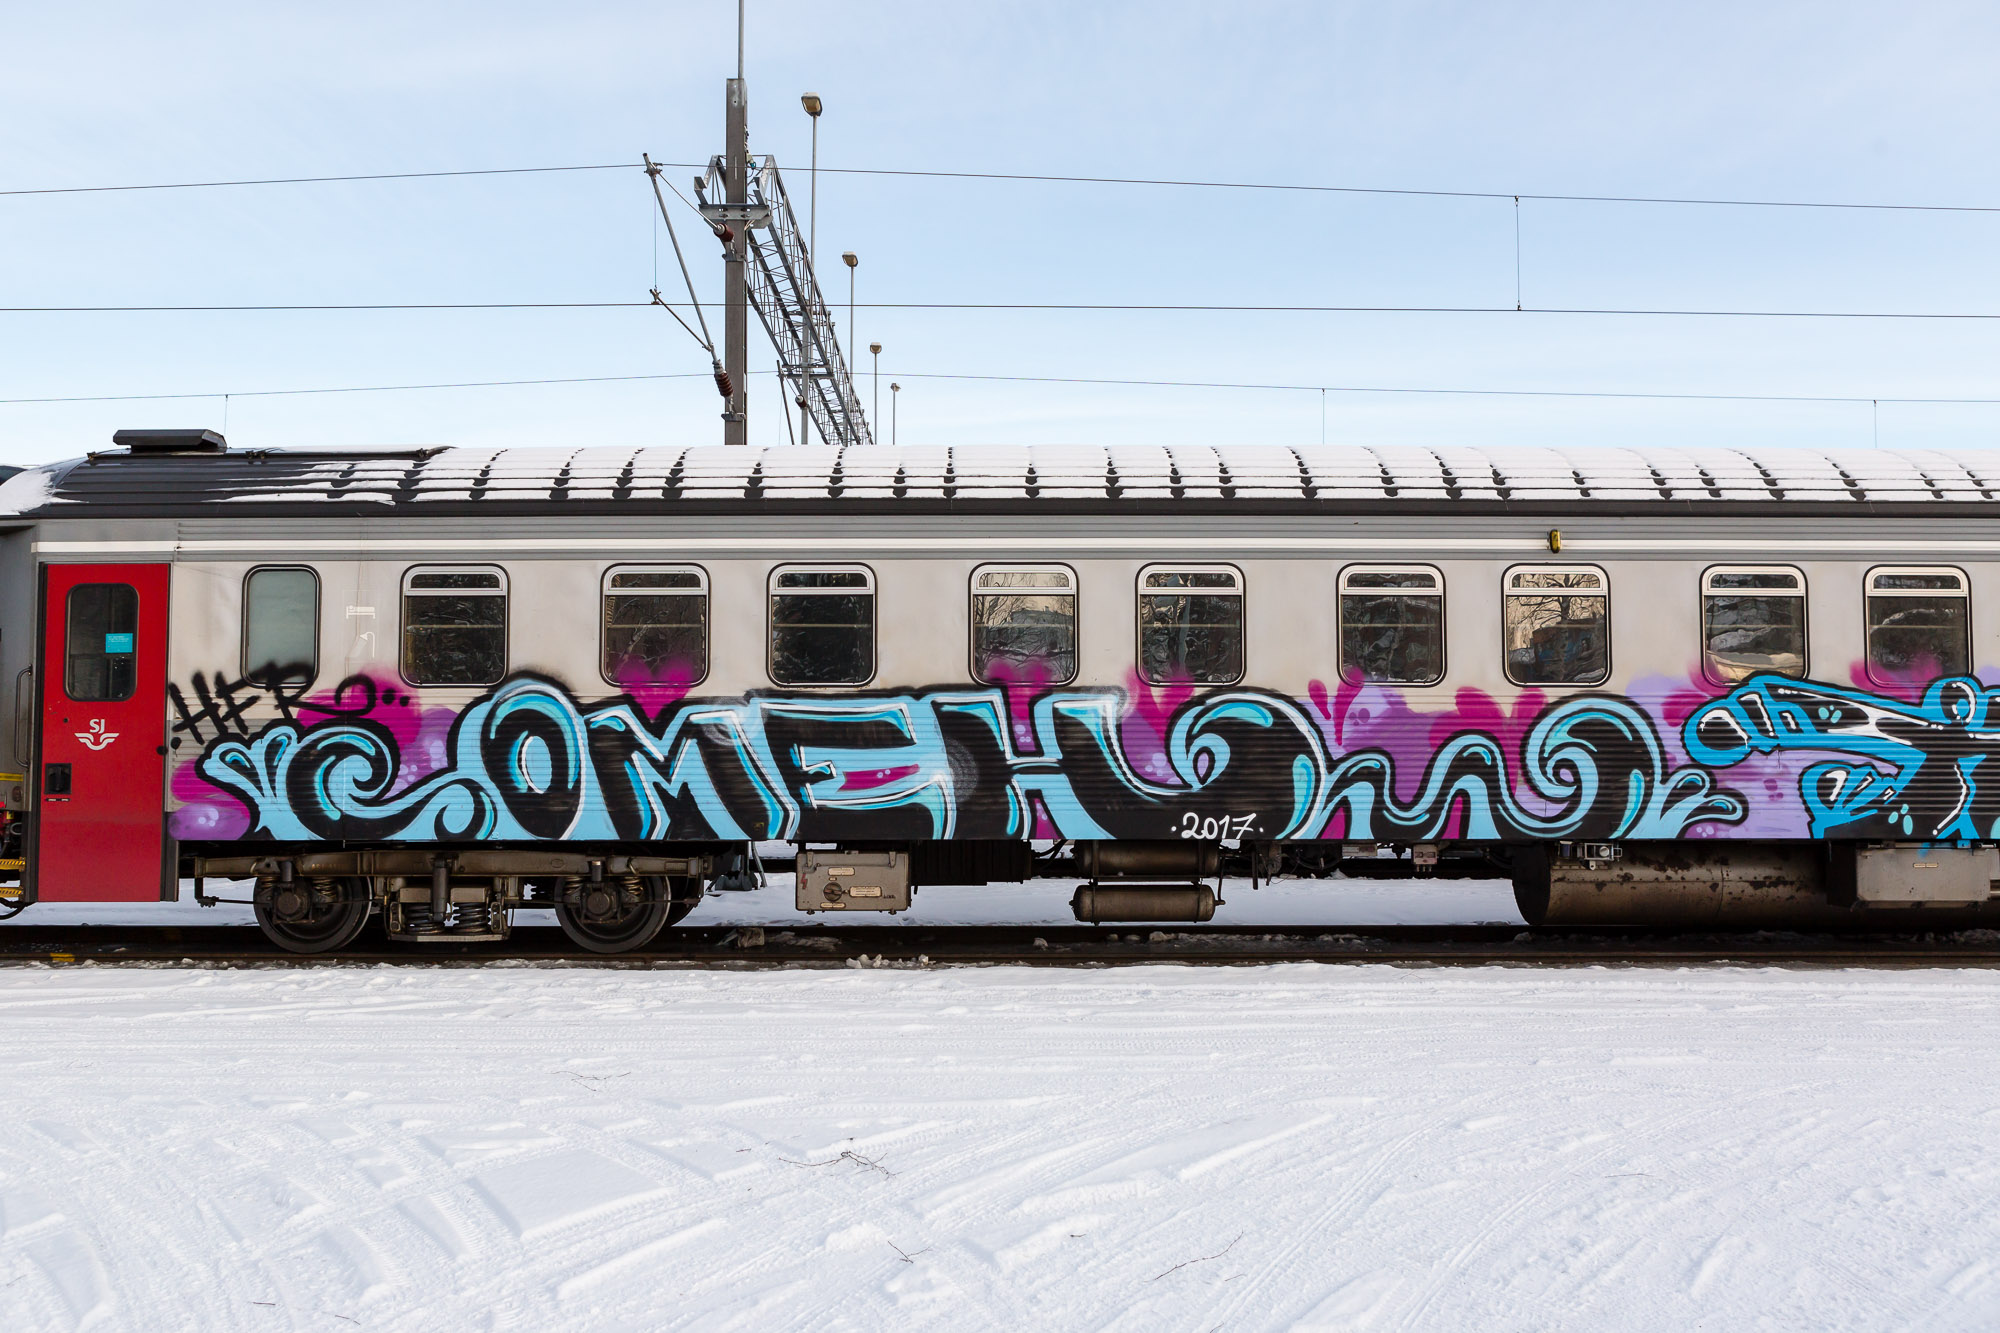 Train covered in graffitti, Luleå, Sweden January 2017, Ben Lee Photography